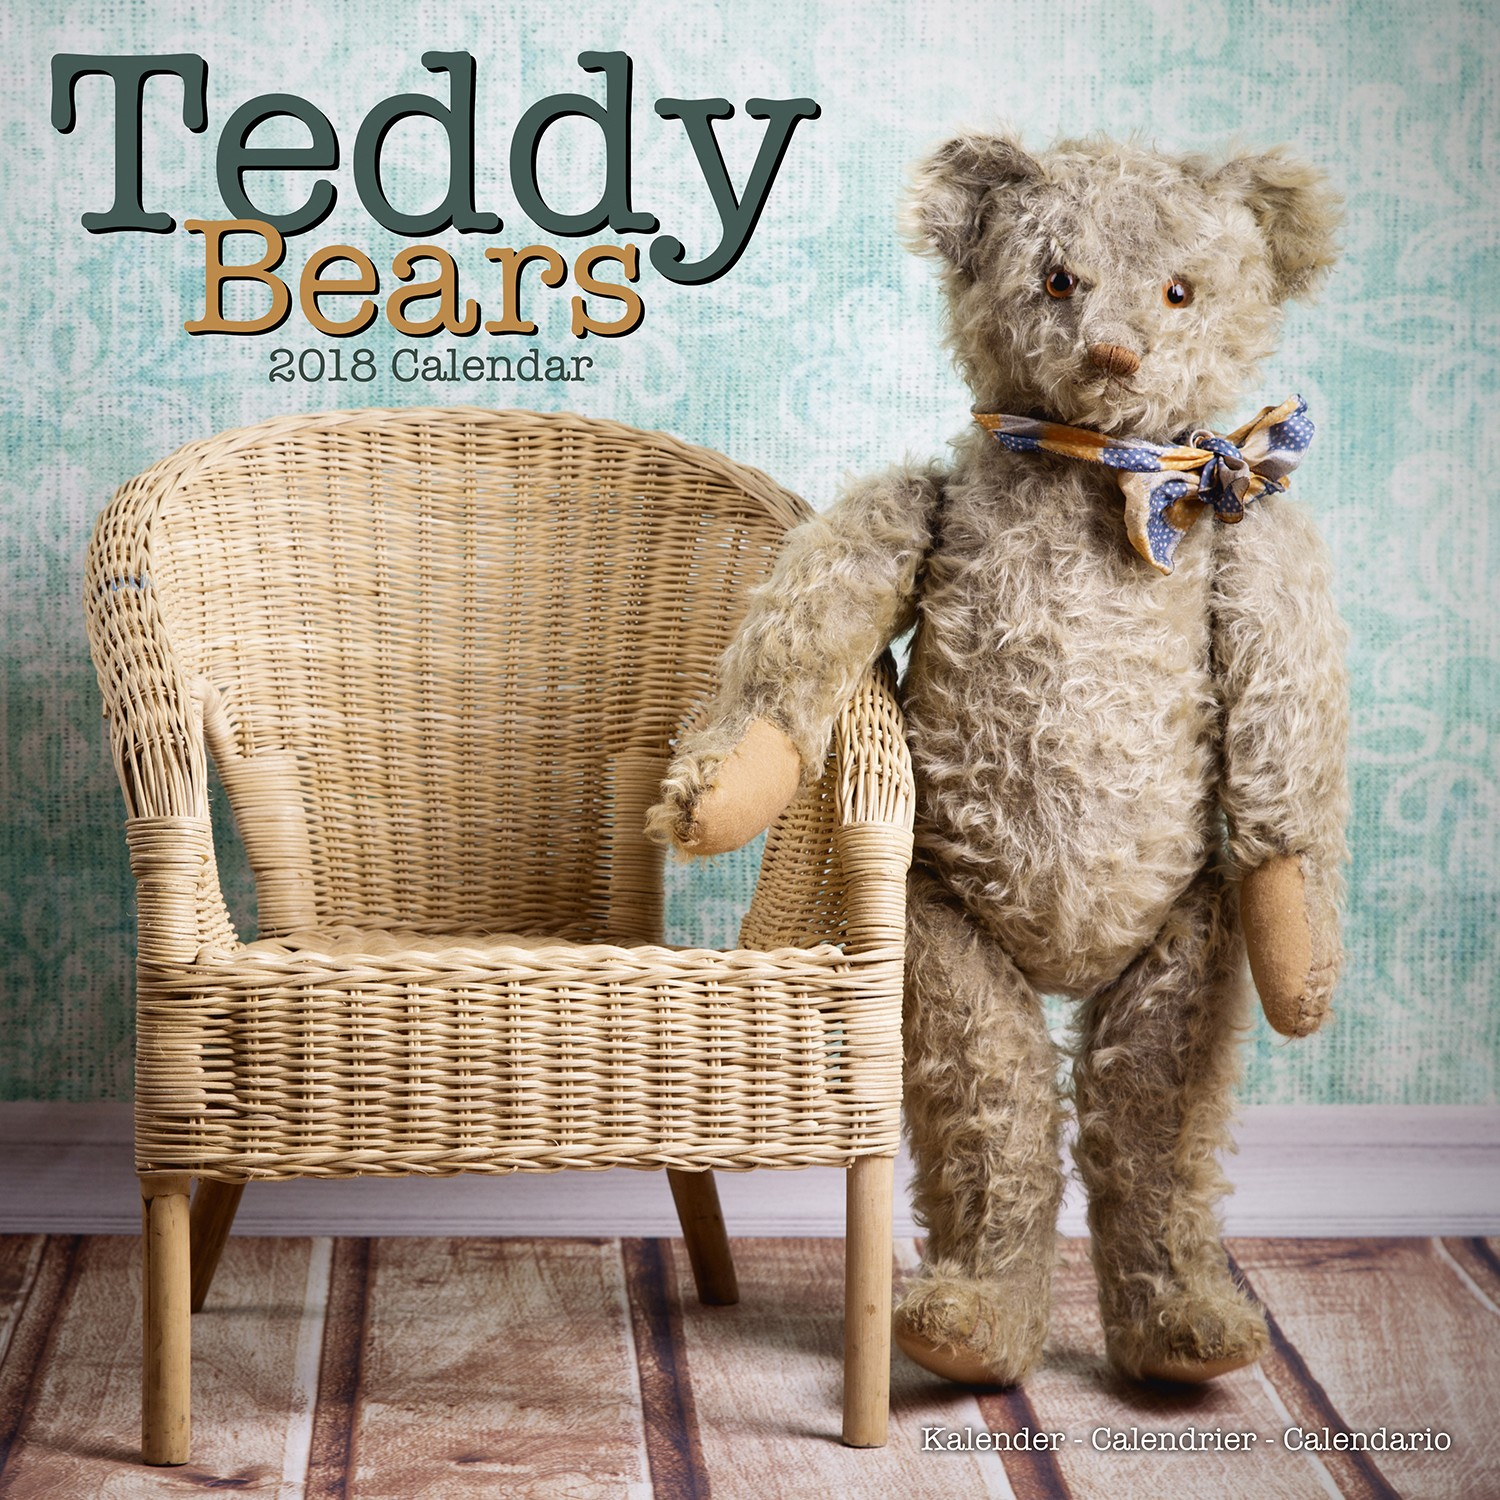 Teddy Bears Wall Calendar 2018